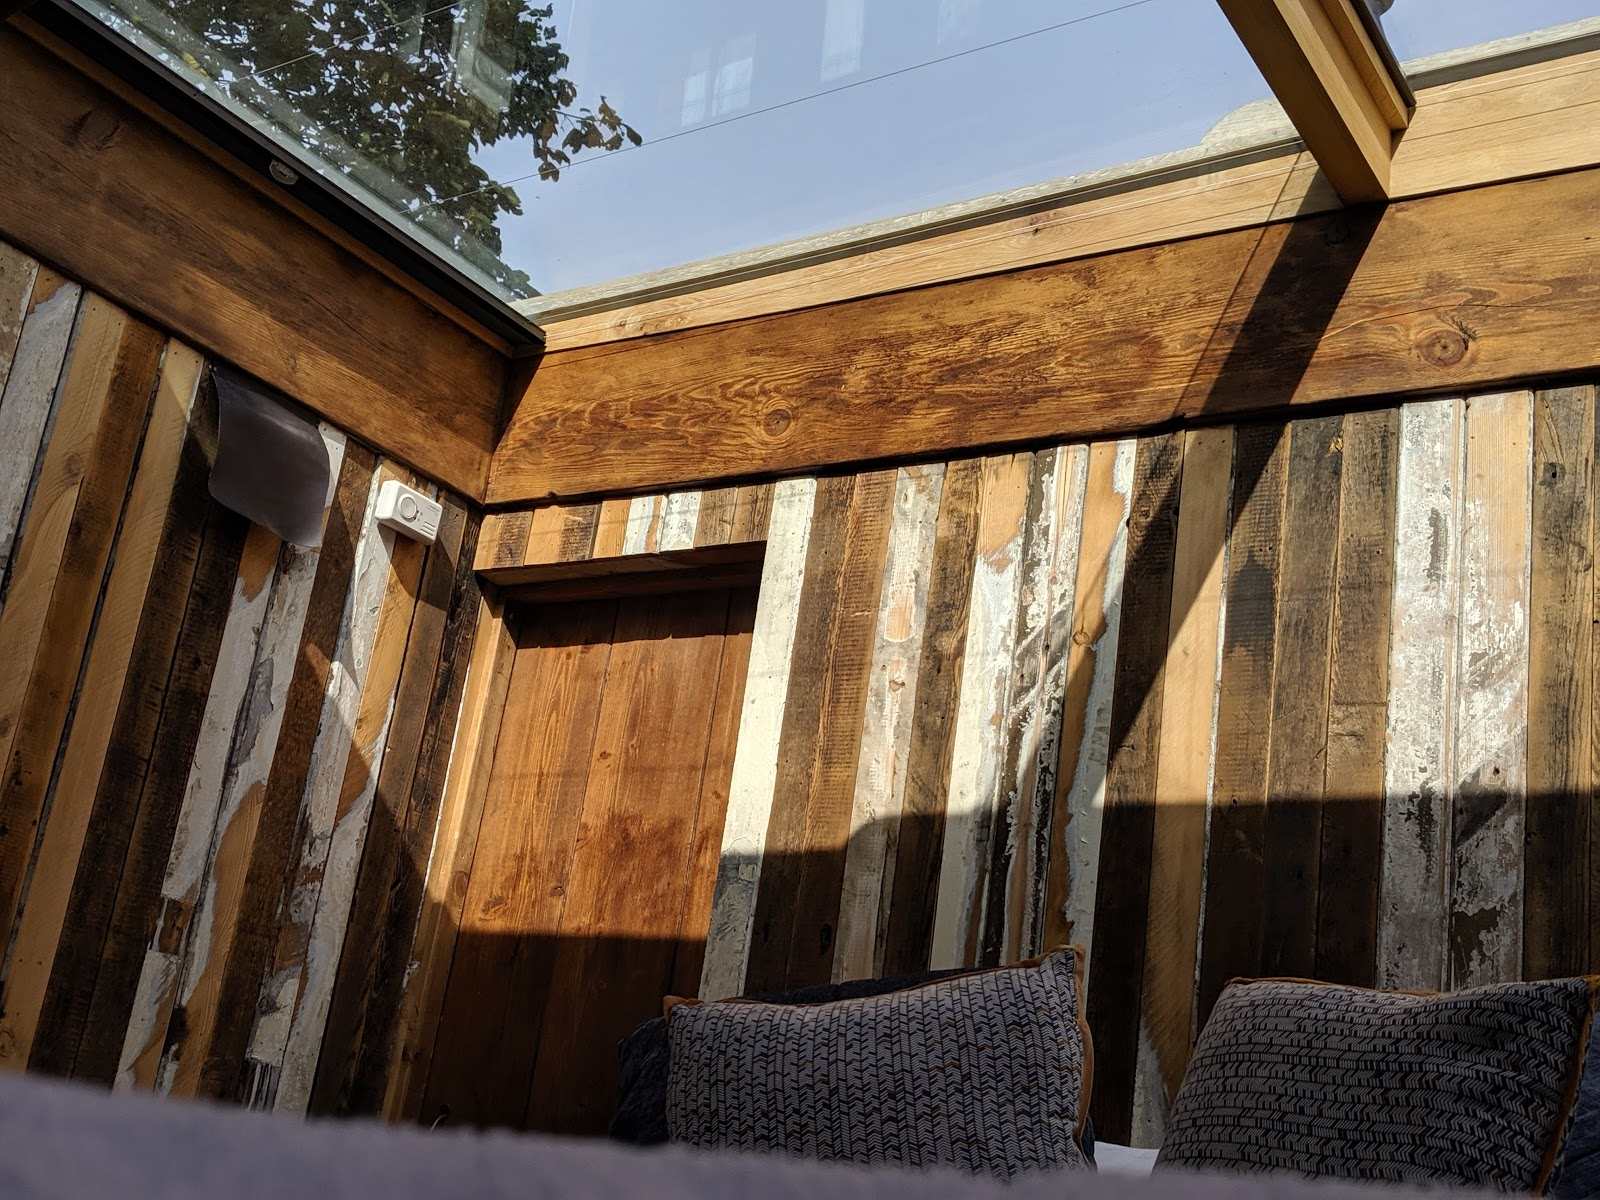 Shepherd's Retreats Beadnell Review - Dog-friendly Glamping in Northumberland - stargazing roof